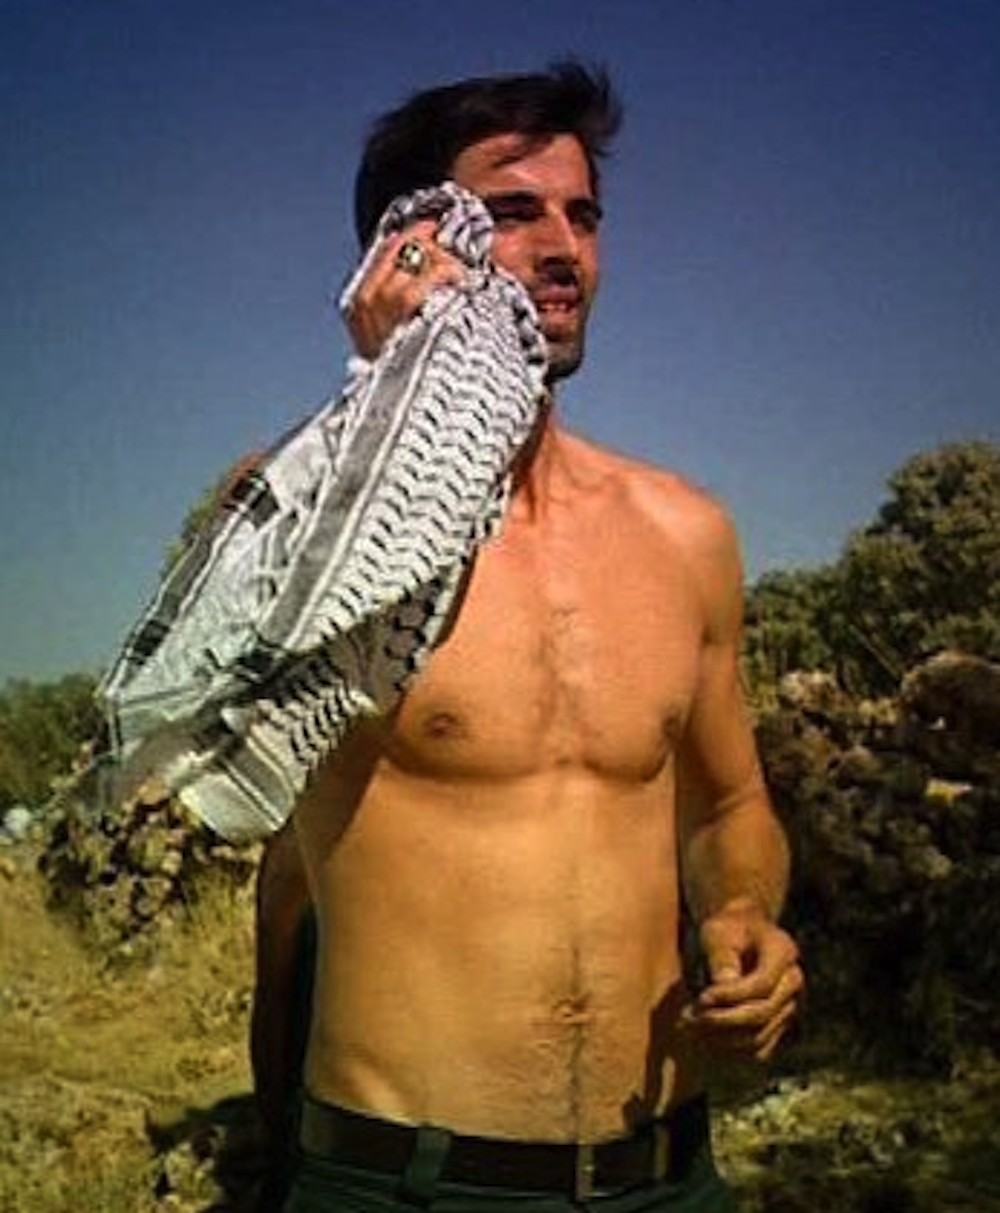 11. SÎLA - Puterea destinului - comentarii Comments about serial and actors  - Pagina 2 Mehmet%2BAkif%2BAlakurt%2Bshirtless%2B15